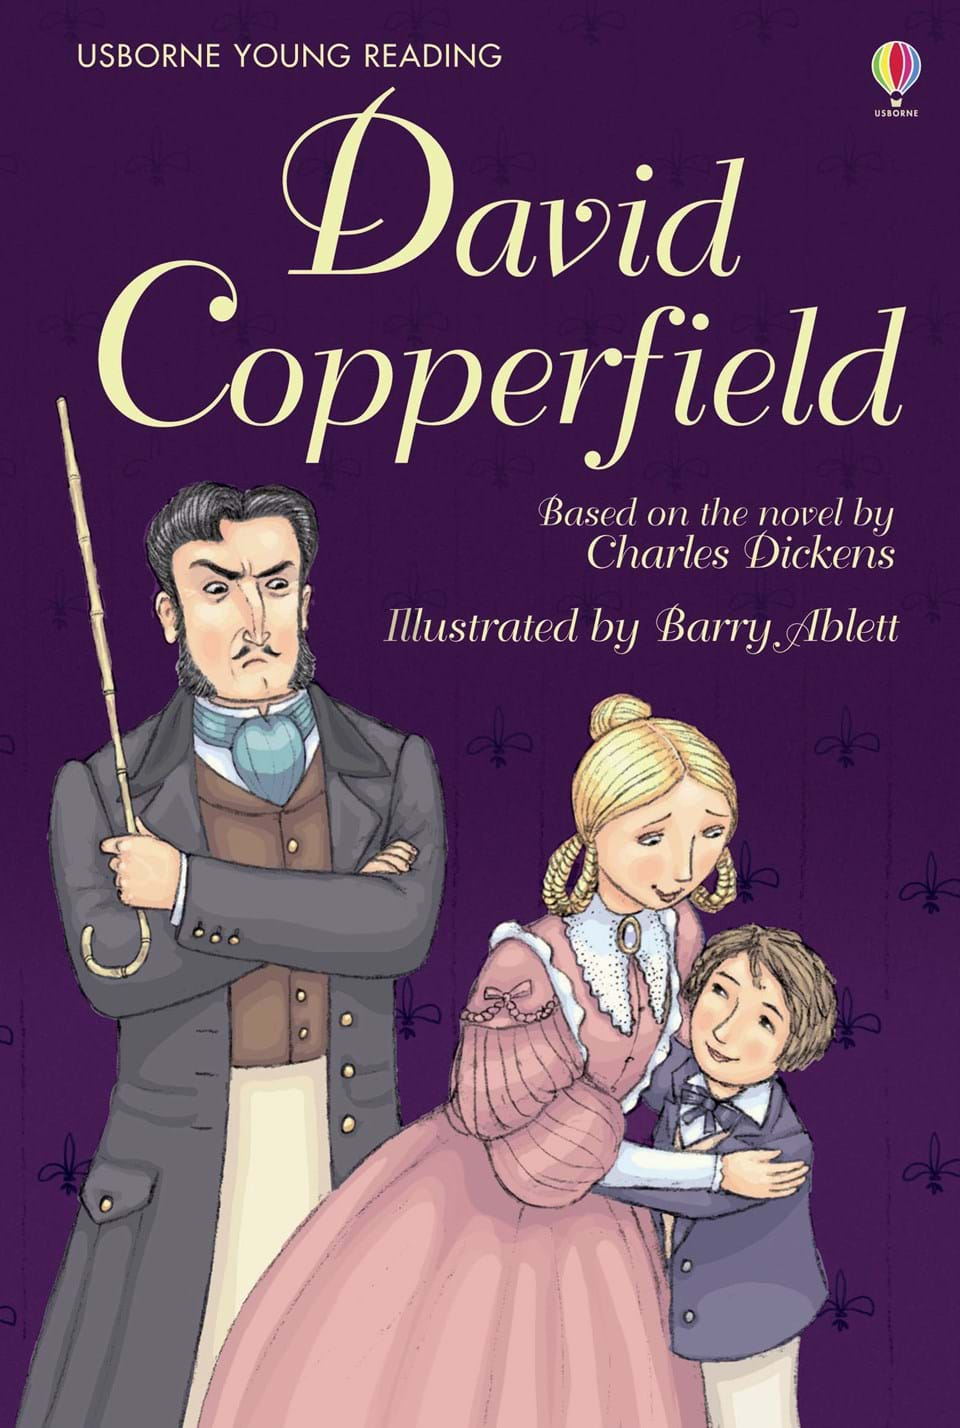 a plot summary of charles dickens novel david copperfield David copperfield begins with avid the tragedy of david's brother dying when david is just a boy my favorite charles dickens book david copperfield a story i didn't want to end loved this narrator reviewer.